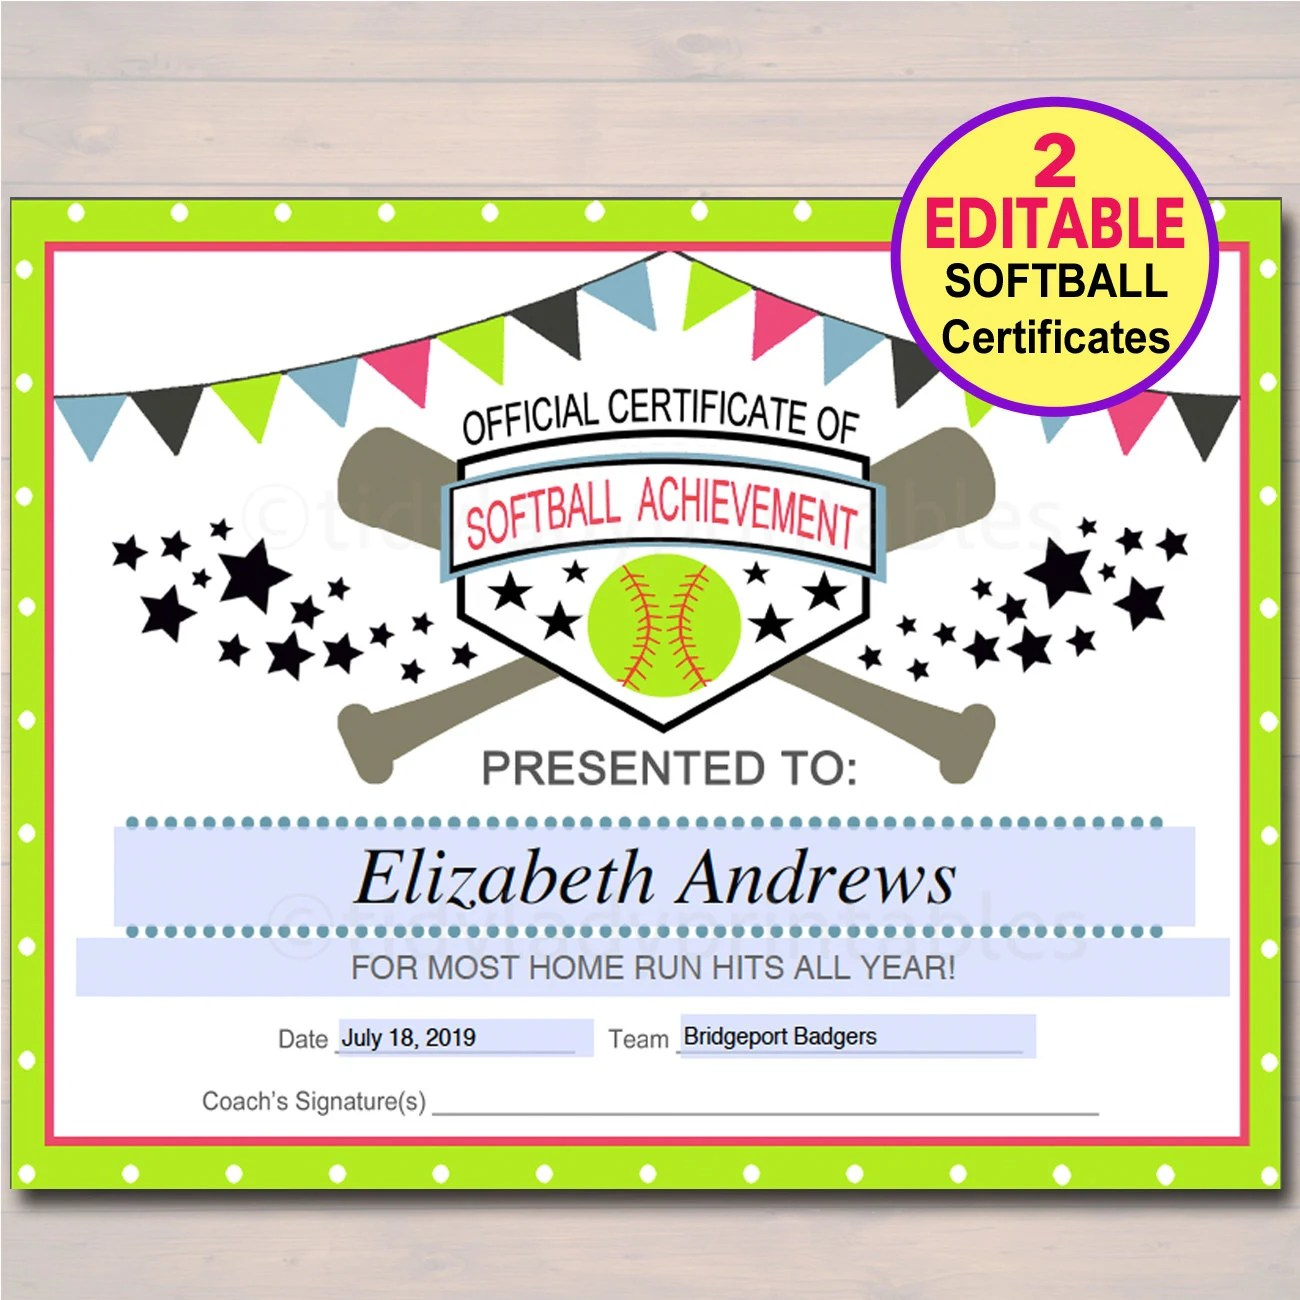 EDITABLE Softball Certificates INSTANT DOWNLOAD Softball